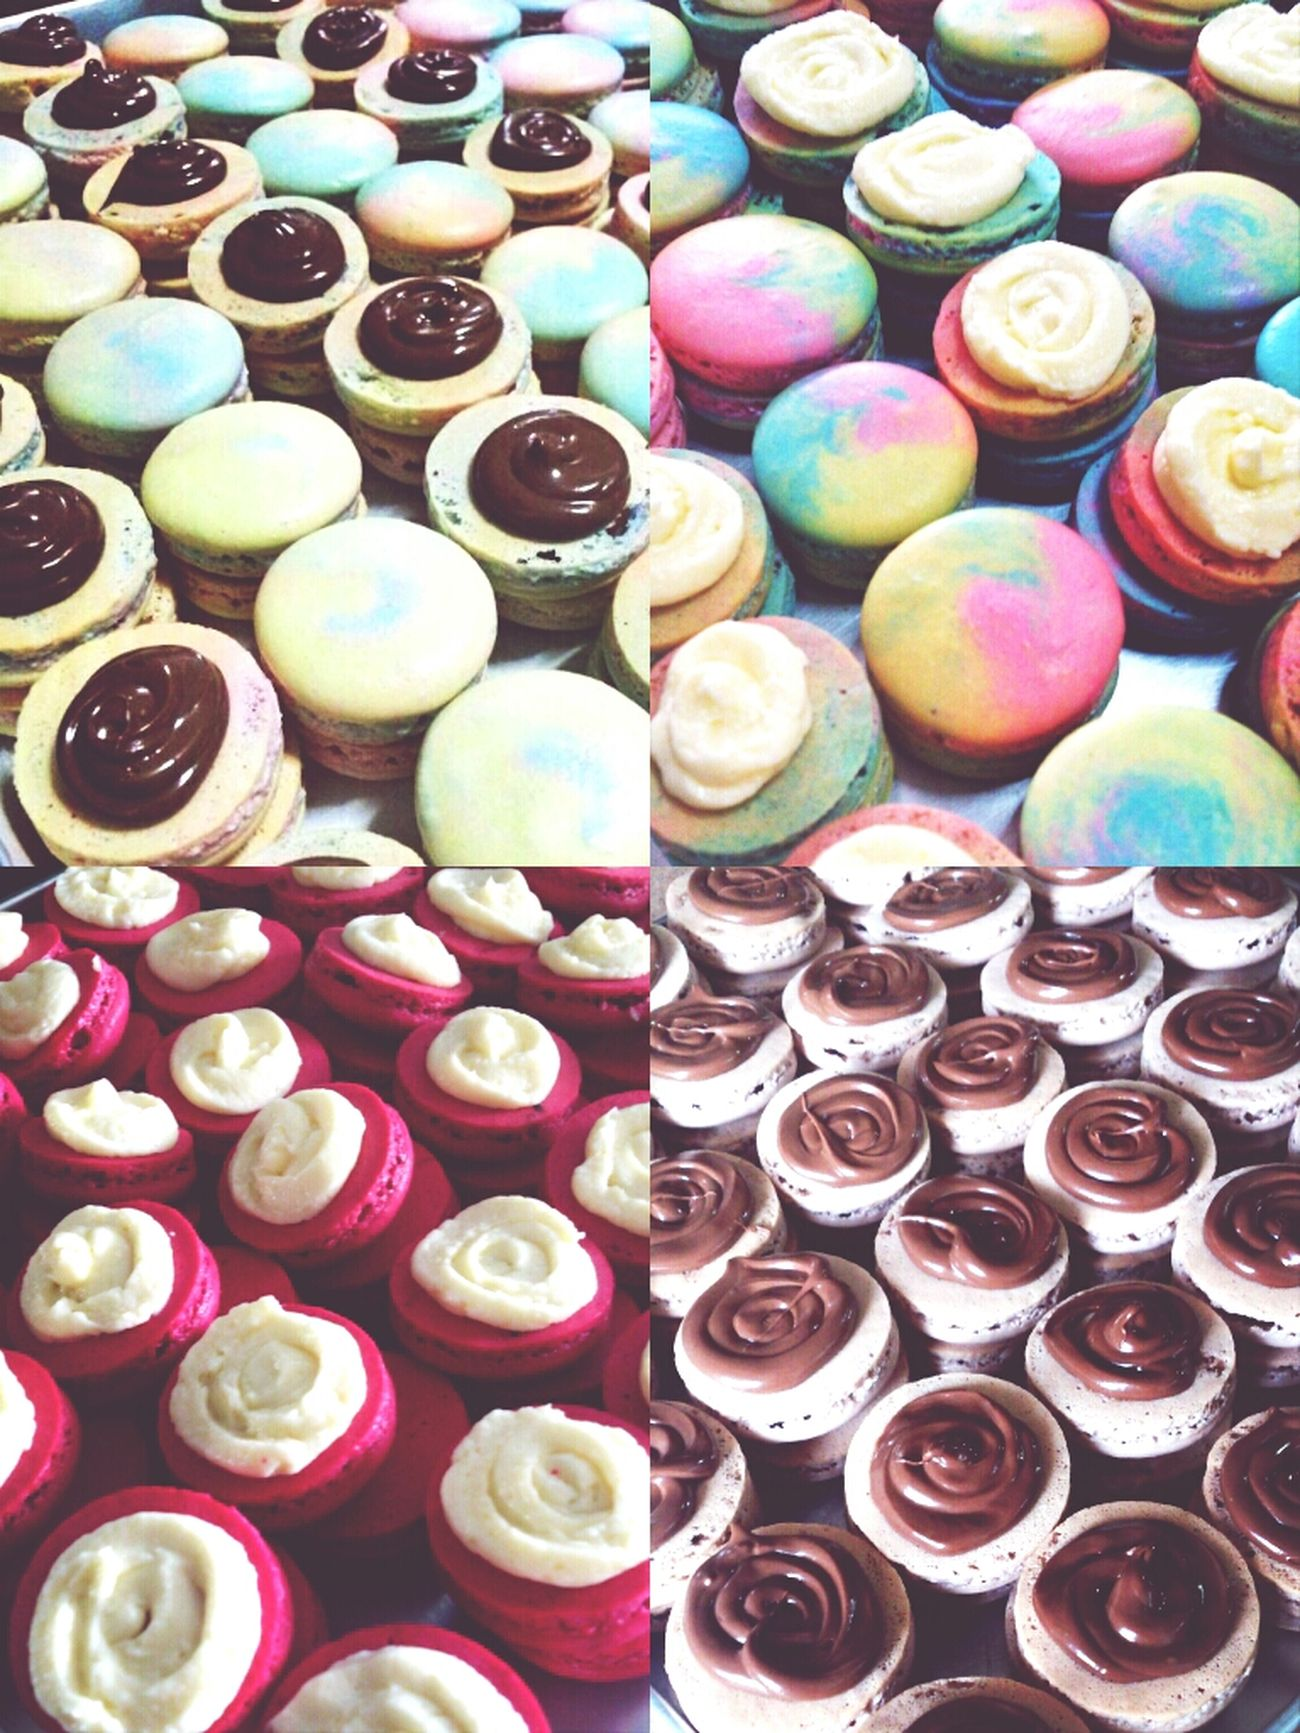 today's bakes.... 100+ macarons n now im ZZZzzzz..... Frenchmacaron Macarons Creamcheese Nutella